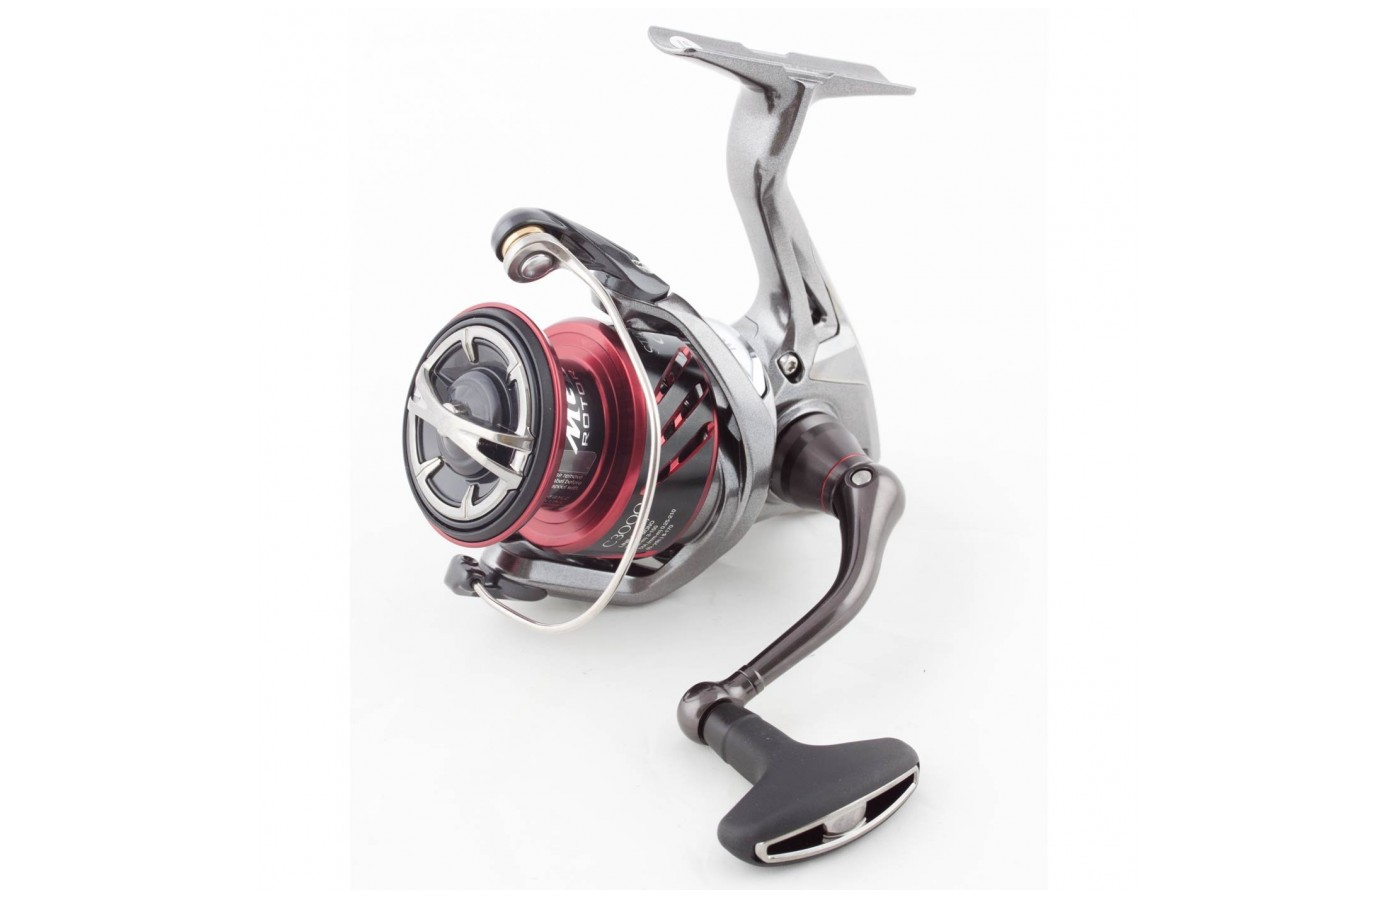 Every part of the Shimano Stradic CI4 is designed for enhanced fishing experience.